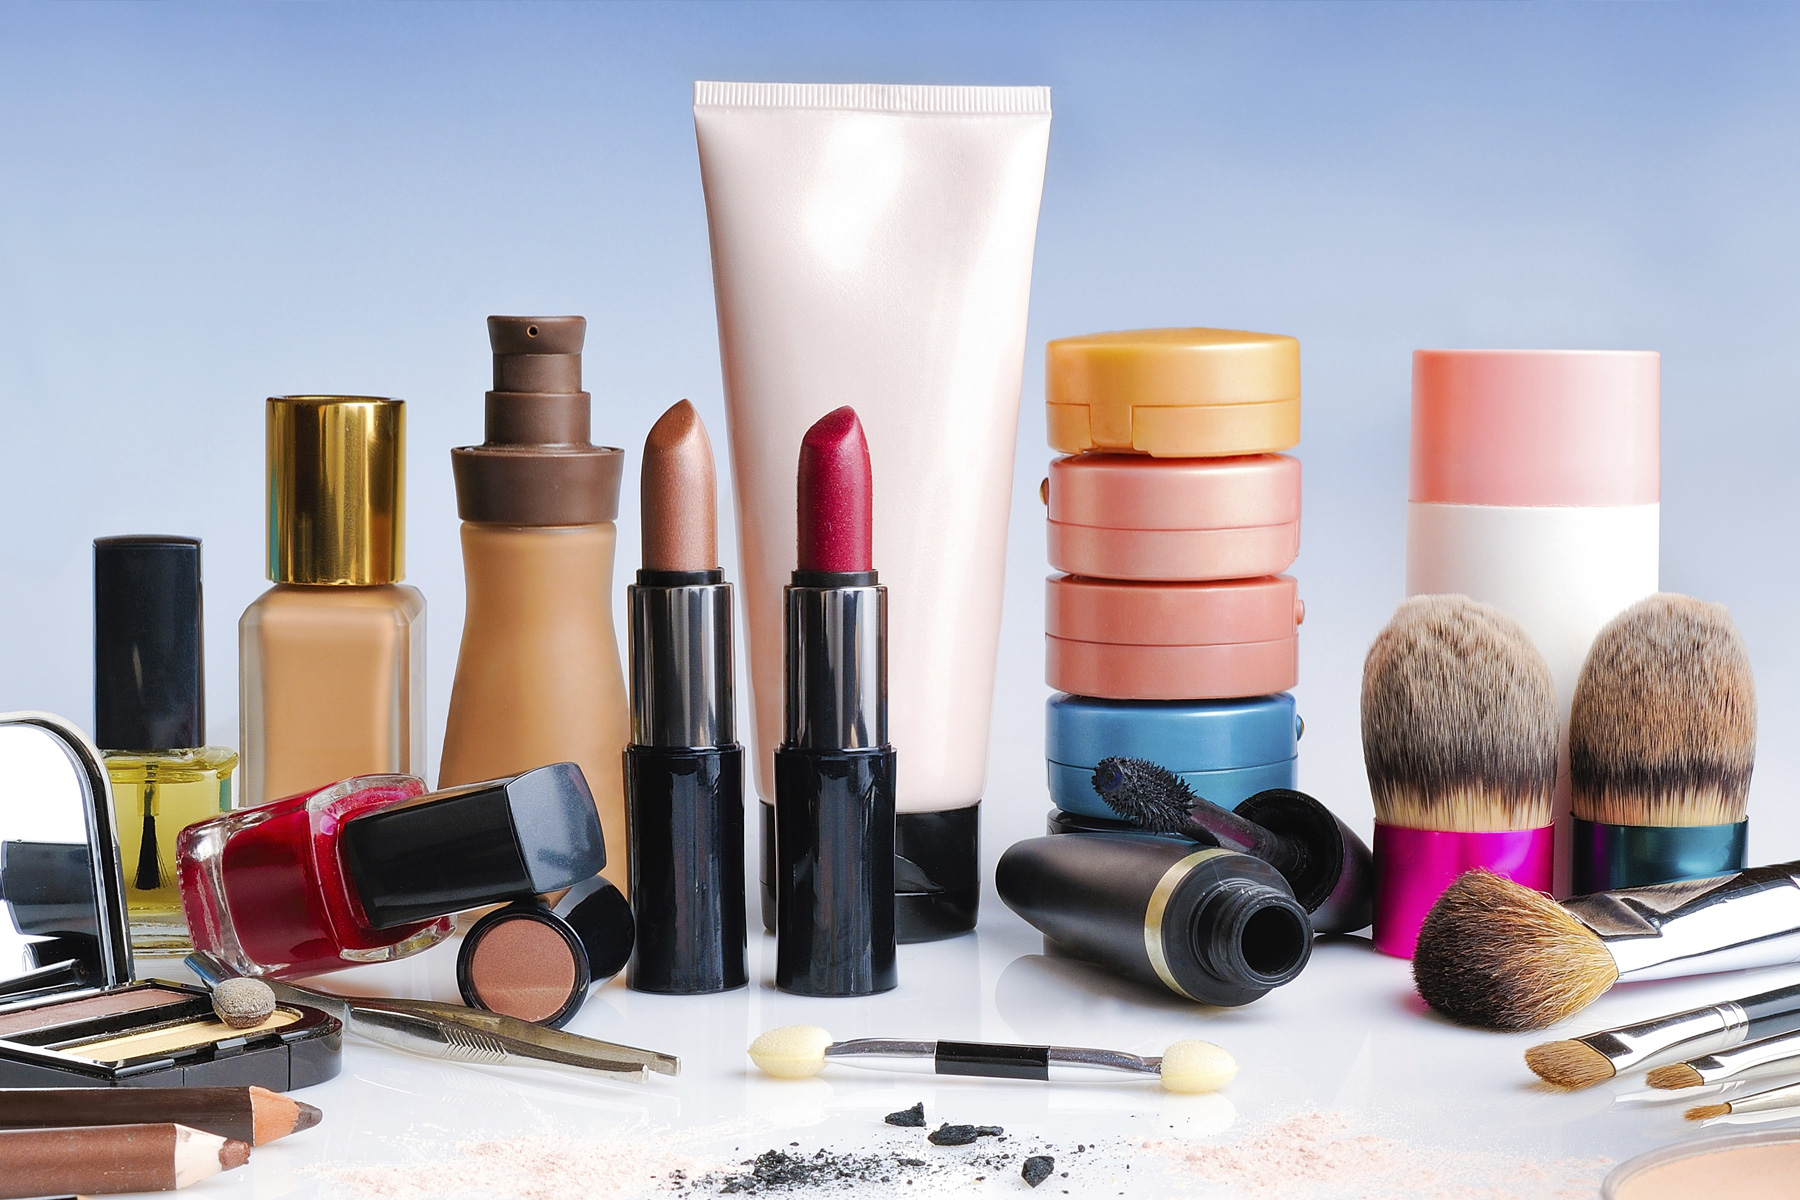 Cosmetics - Make-up